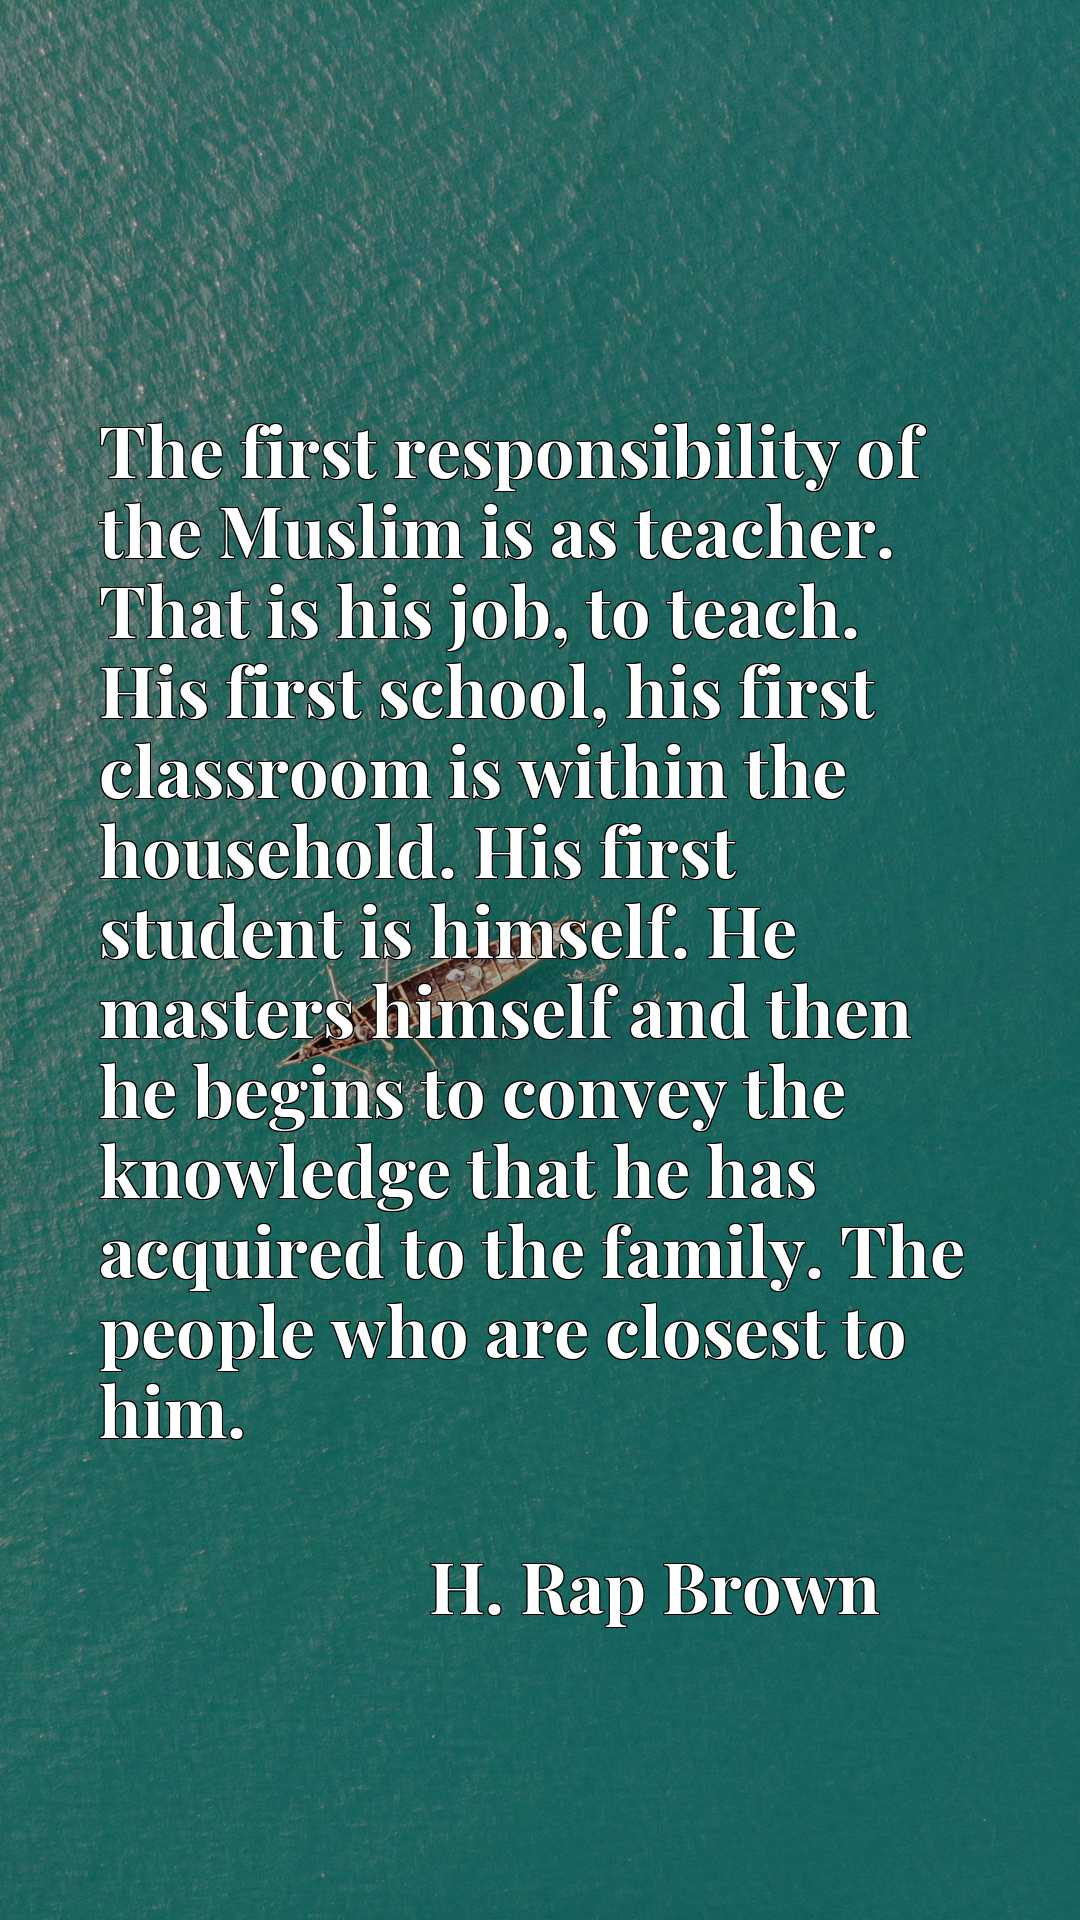 The first responsibility of the Muslim is as teacher. That is his job, to teach. His first school, his first classroom is within the household. His first student is himself. He masters himself and then he begins to convey the knowledge that he has acquired to the family. The people who are closest to him.